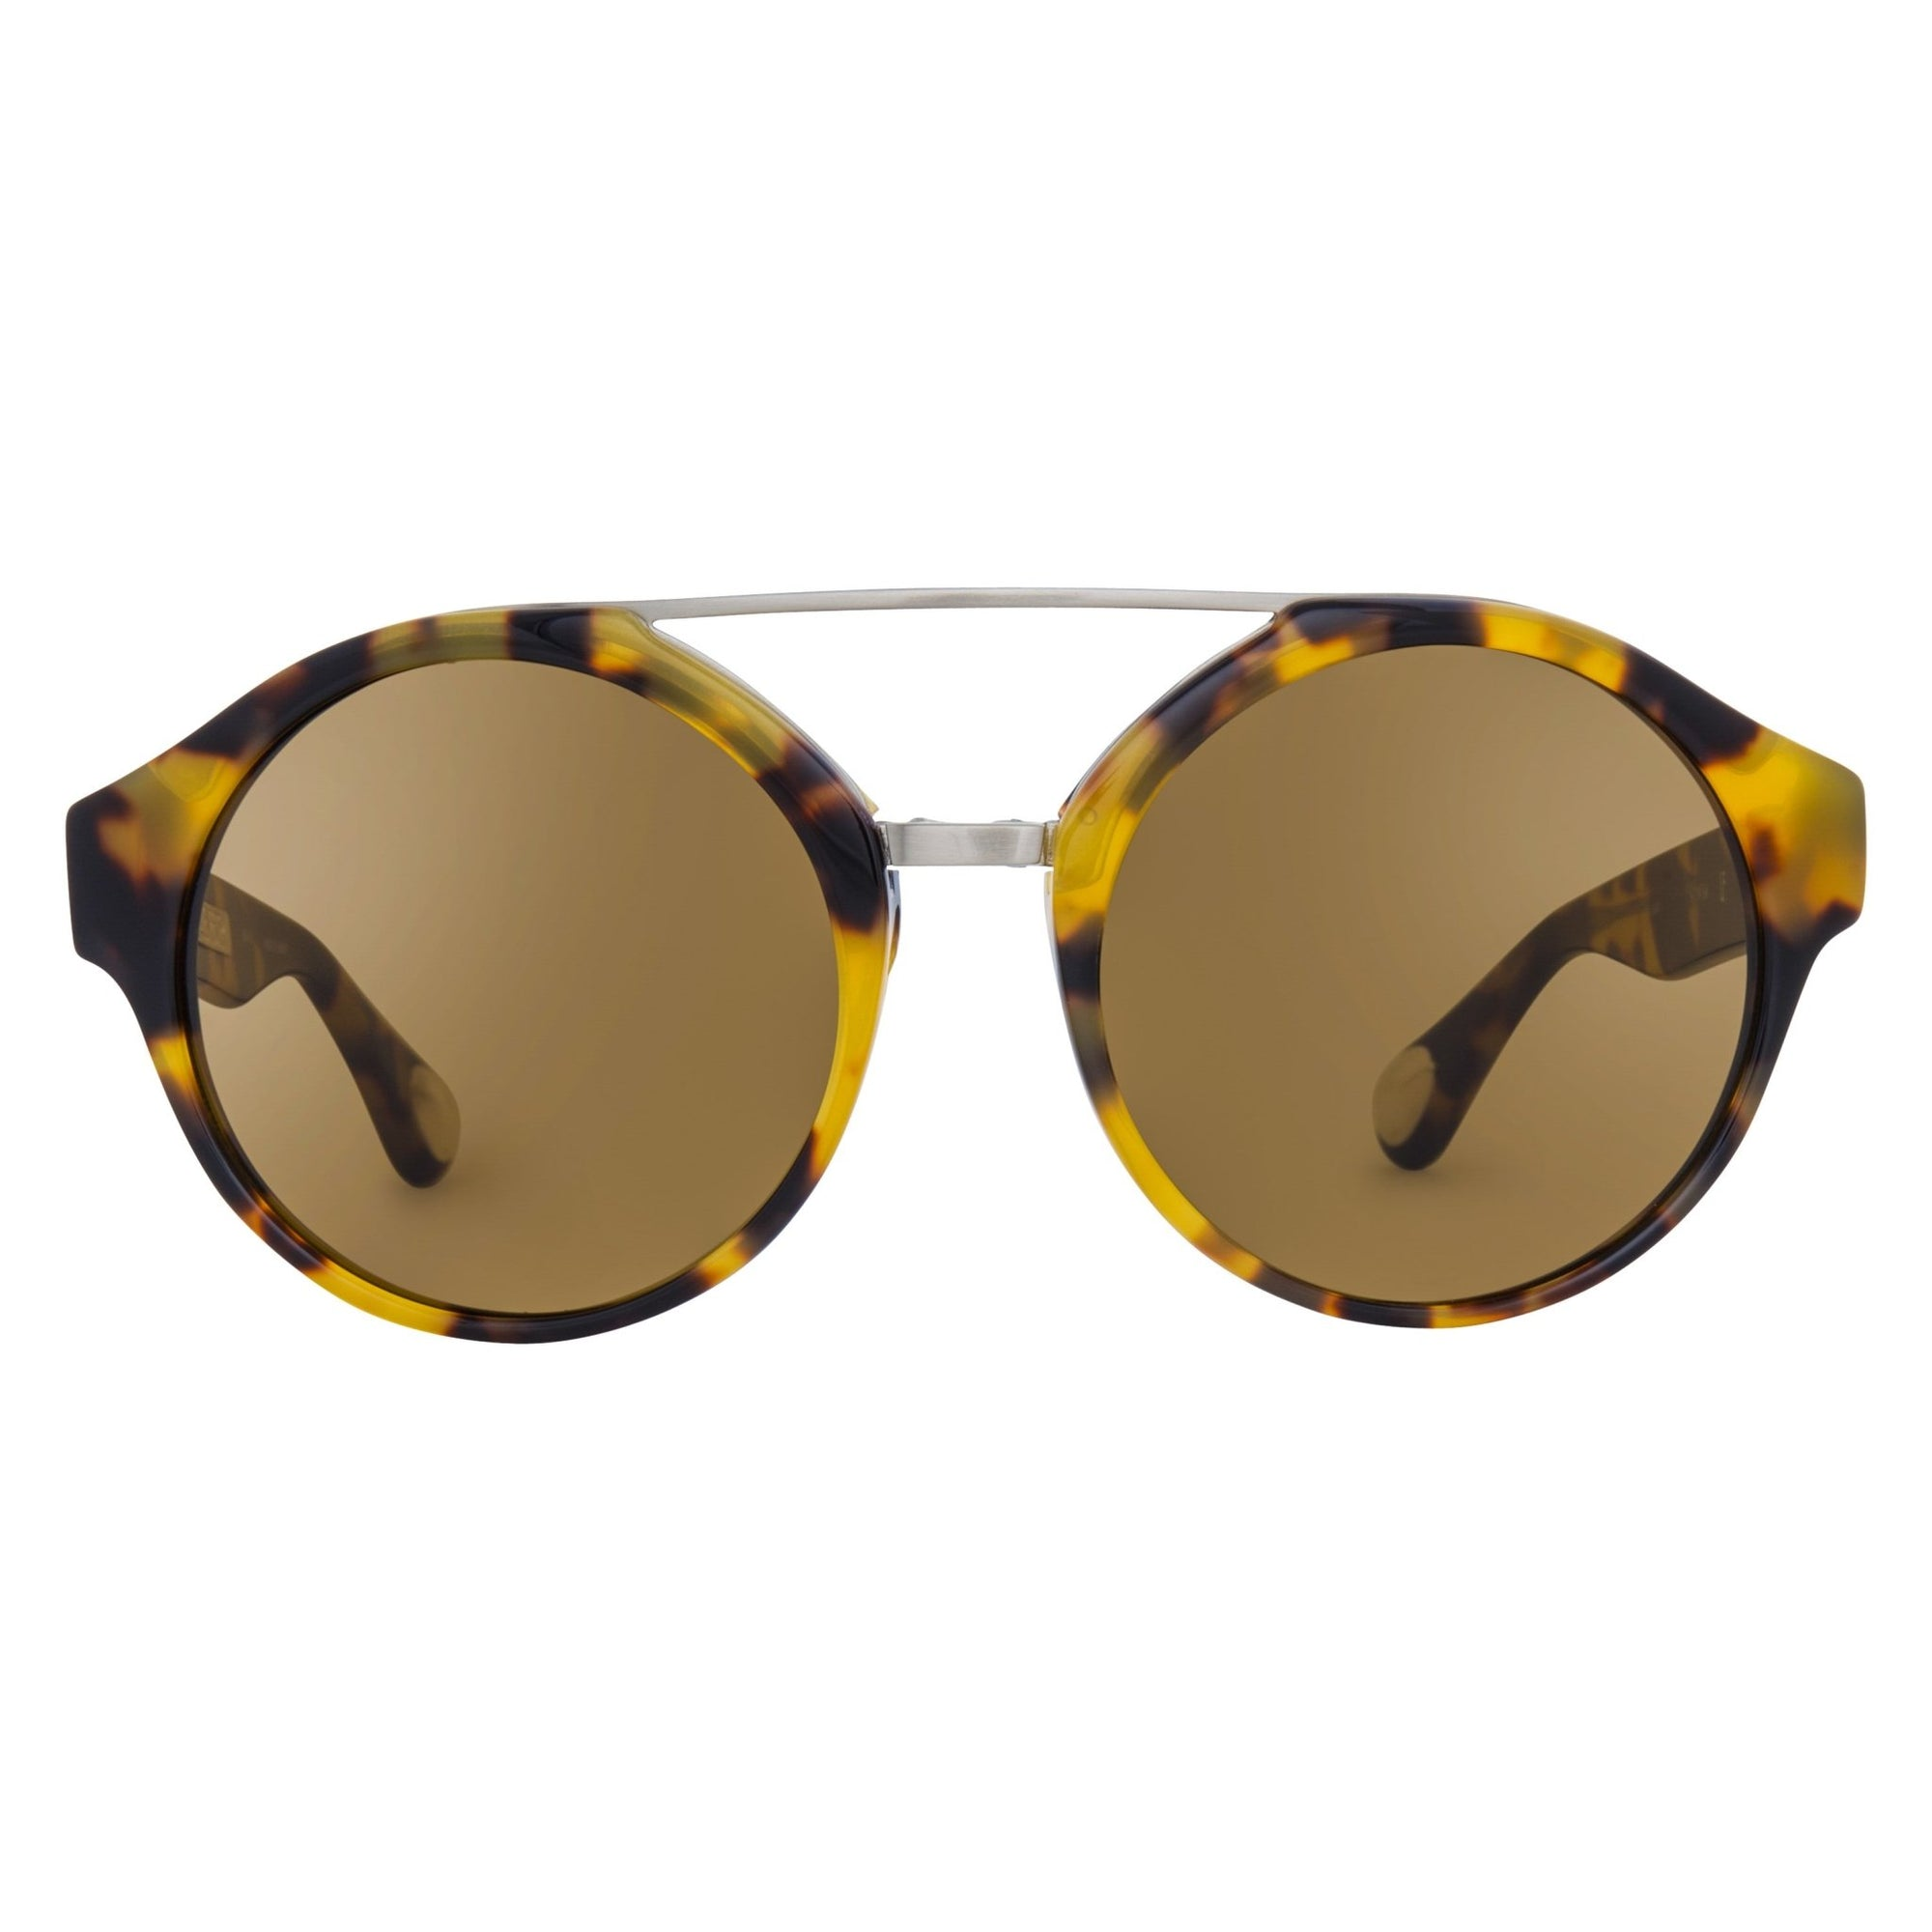 Ann Demeulemeester Sunglasses Round Tortoise Shell Titanium 925 Silver with Brown Lenses CAT3 AD45C2SUN - Watches & Crystals